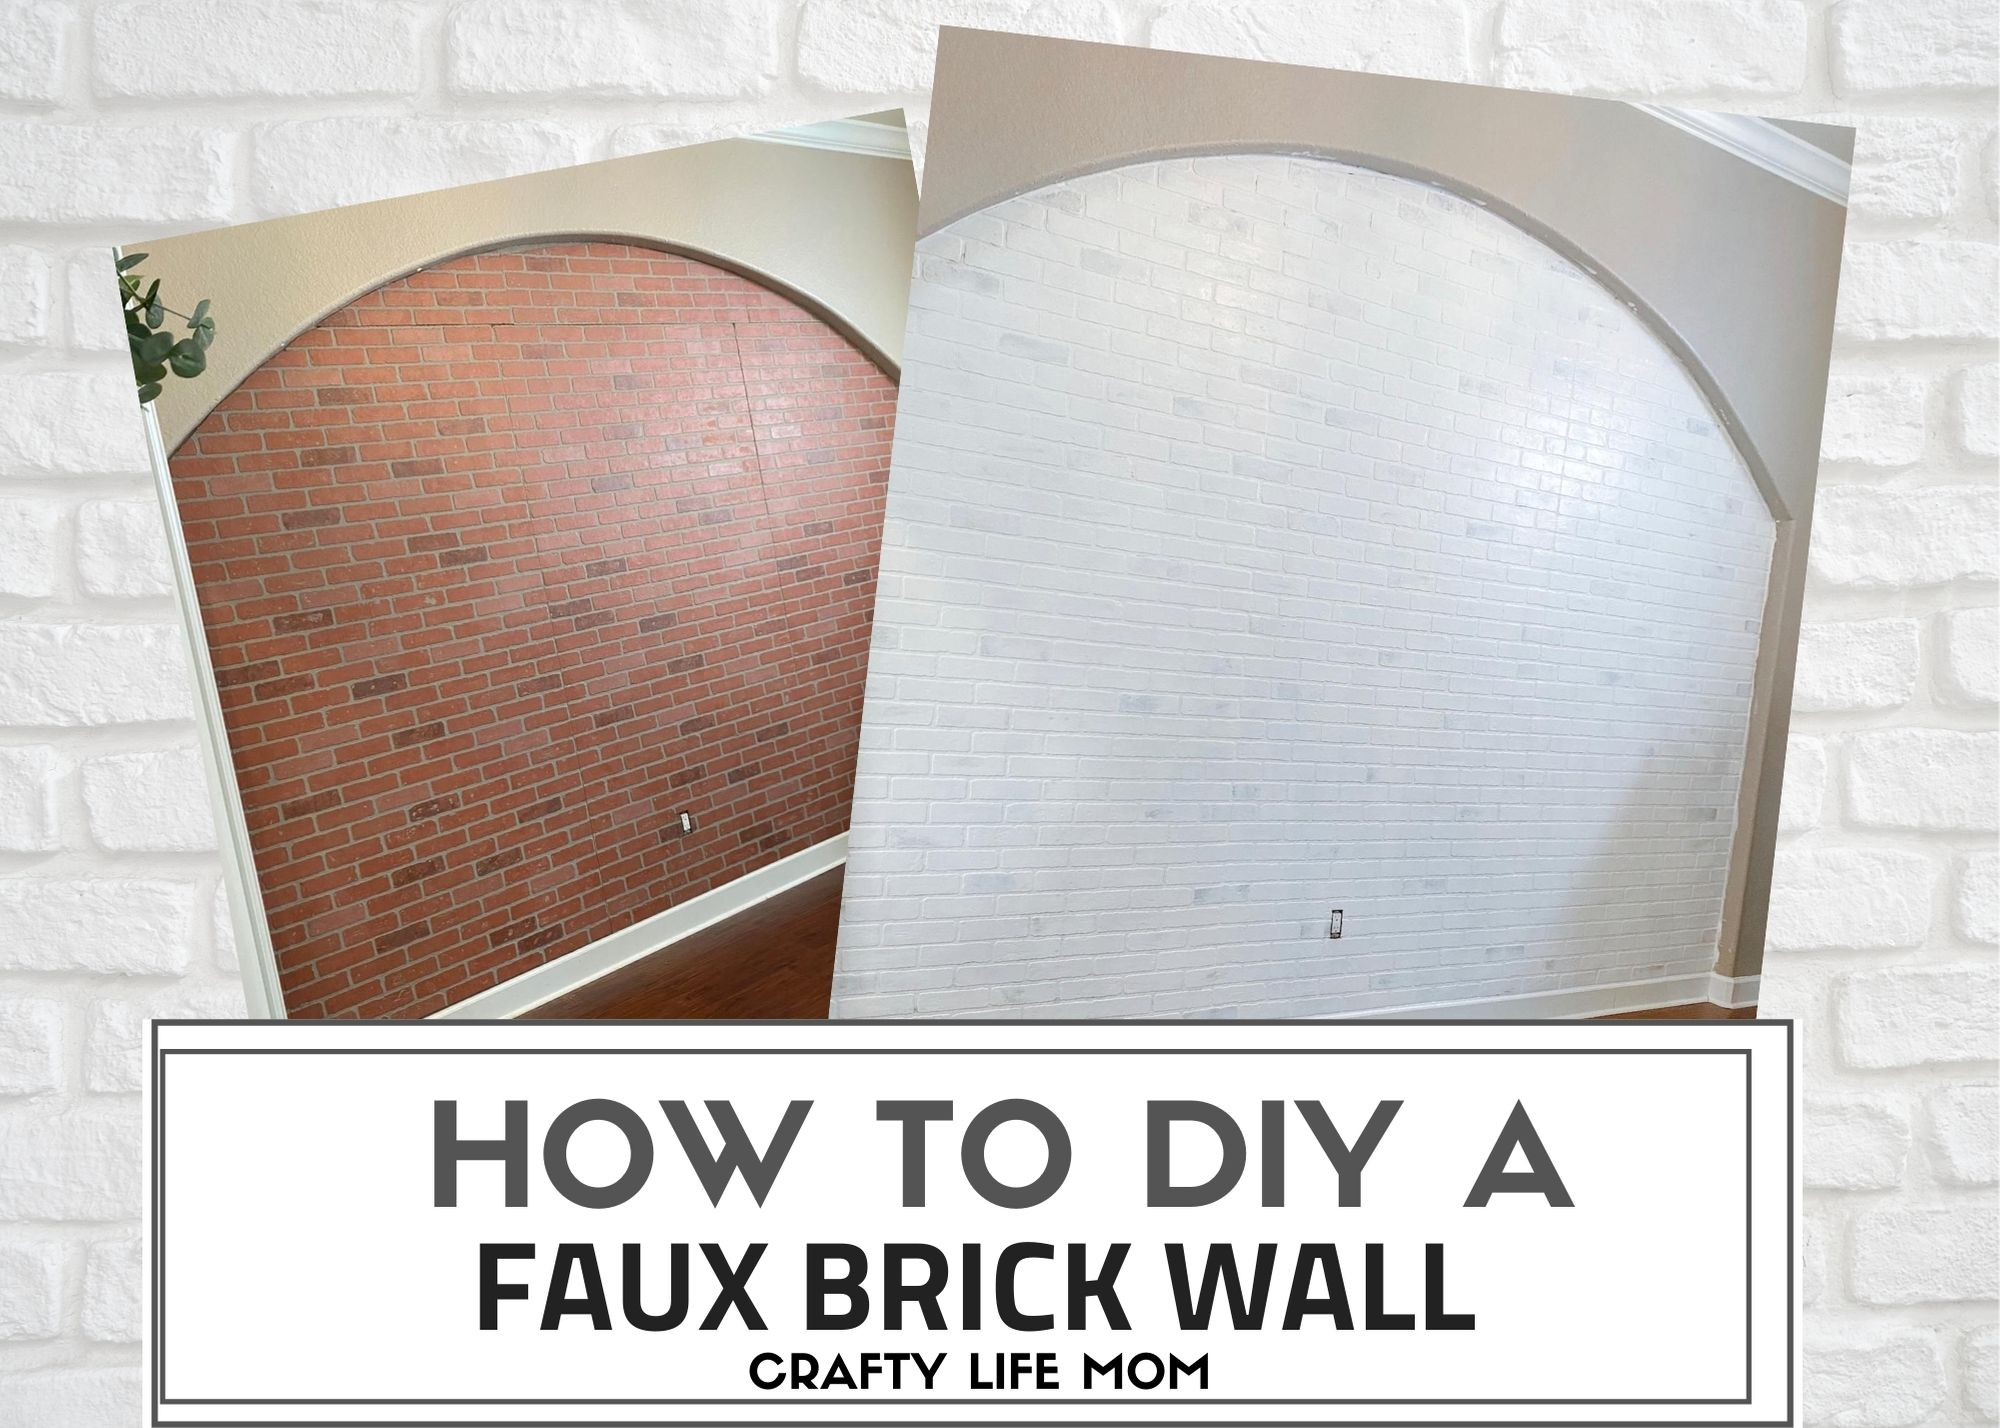 Create a feature or focal wall by making a faux brick wall using brick paneling and some paint to create a unique look. This tutorial shows you my step by step process of adding brick paneling and painting the brick wall.